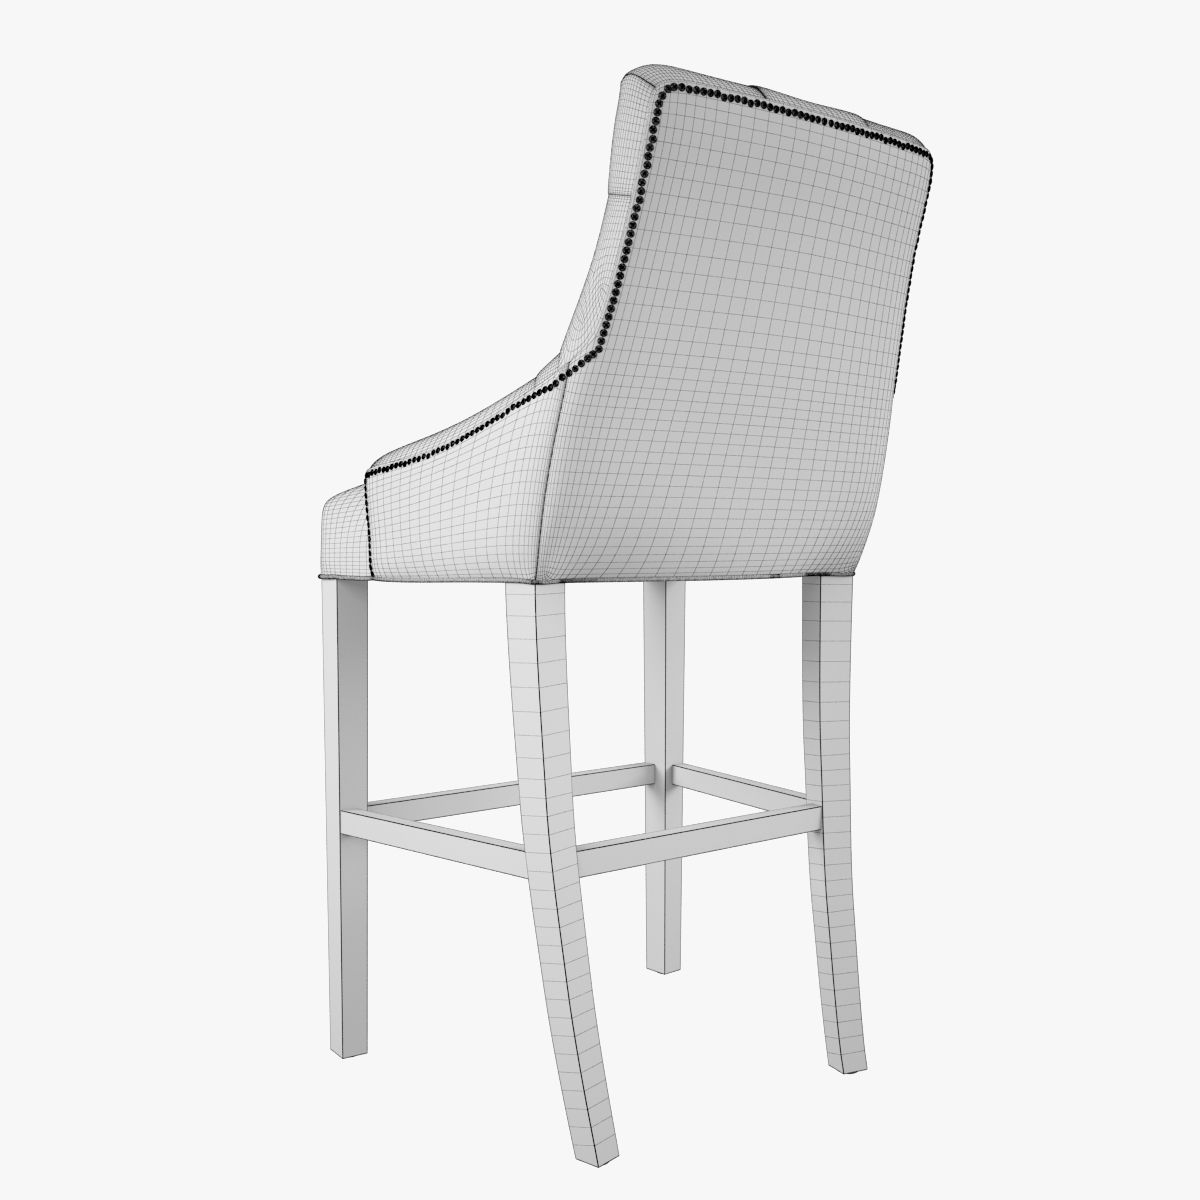 Restoration hardware martine tufted leather stool with